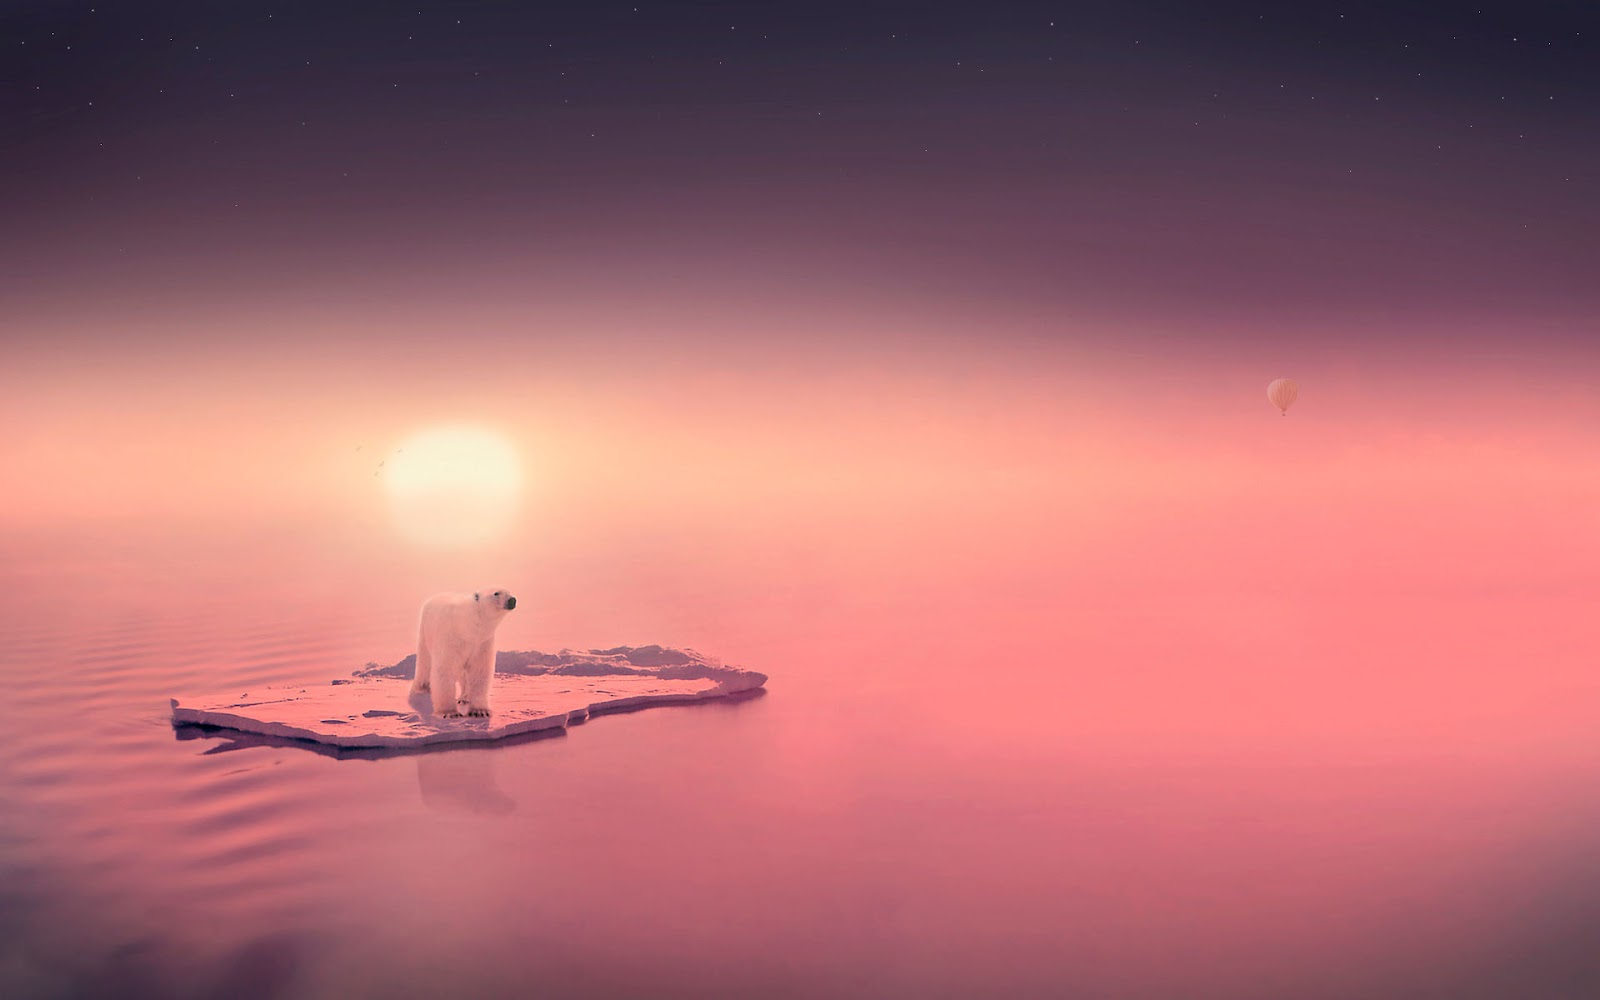 Wallpaper of a polar bear on ice | HD Animals Wallpapers